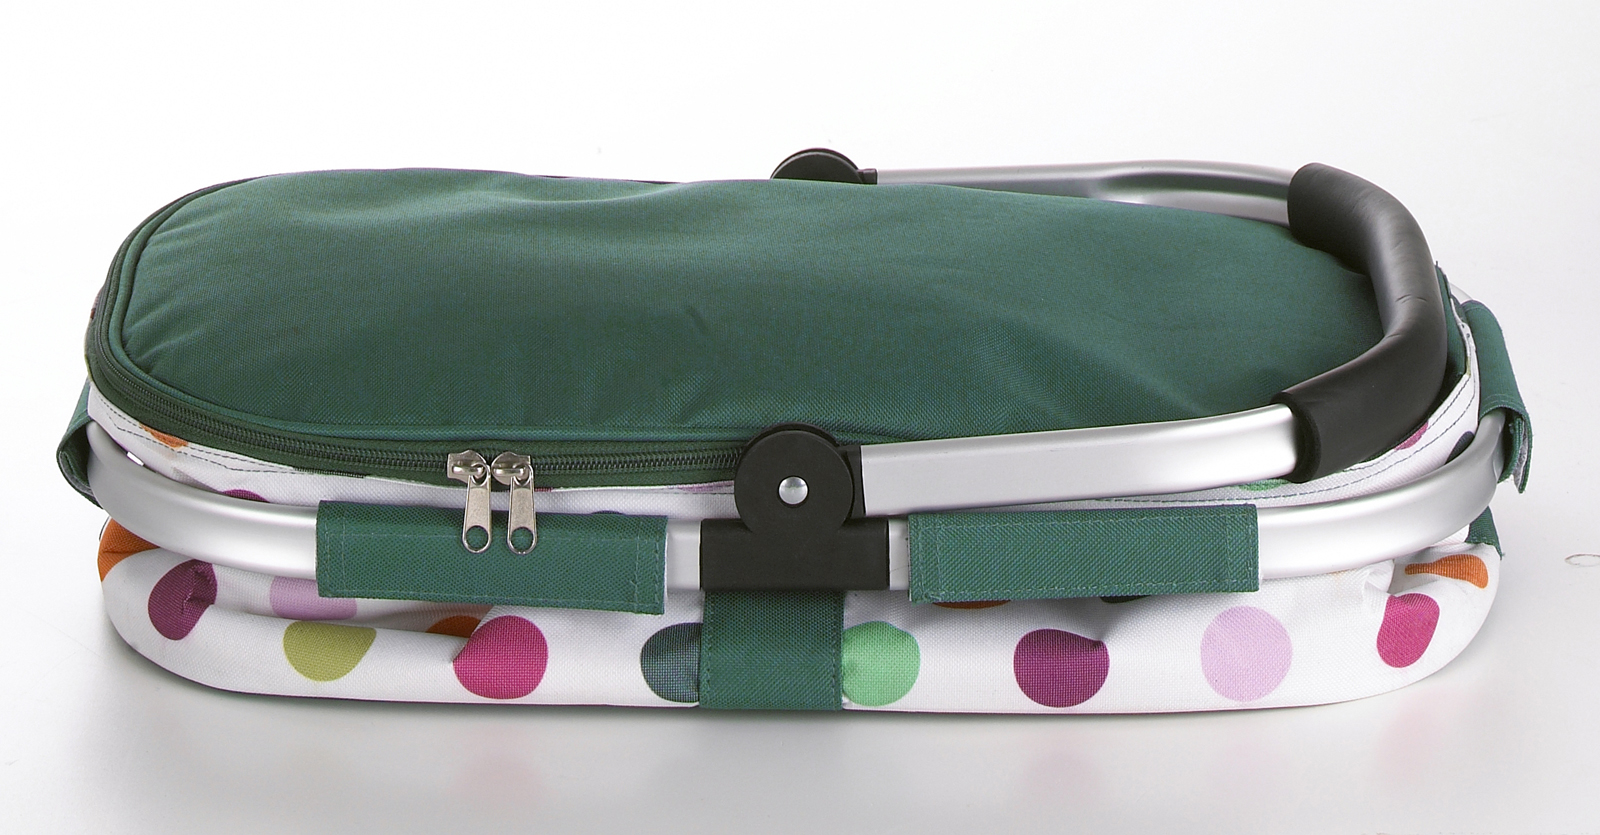 Picnic Basket Lakeland : Picnic in style with these new polka dot coolbags